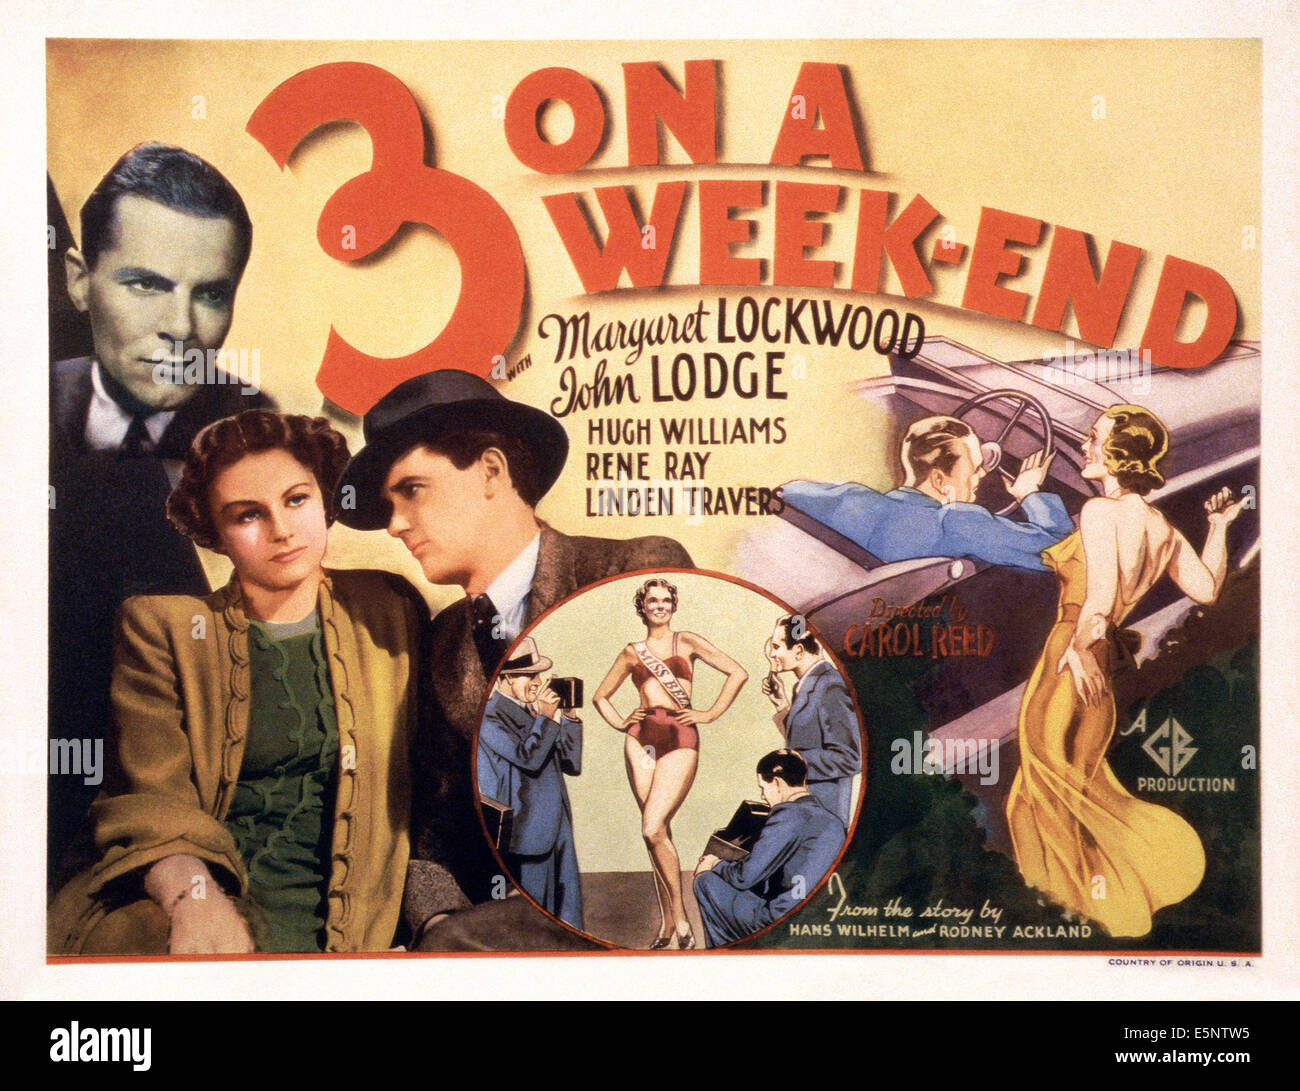 BANK HOLIDAY, (aka THREE ON A WEEKEND), US lobbycard, from left: John Lodge, Margaret Lockwood, Hugh Williams, 1938 - Stock Image